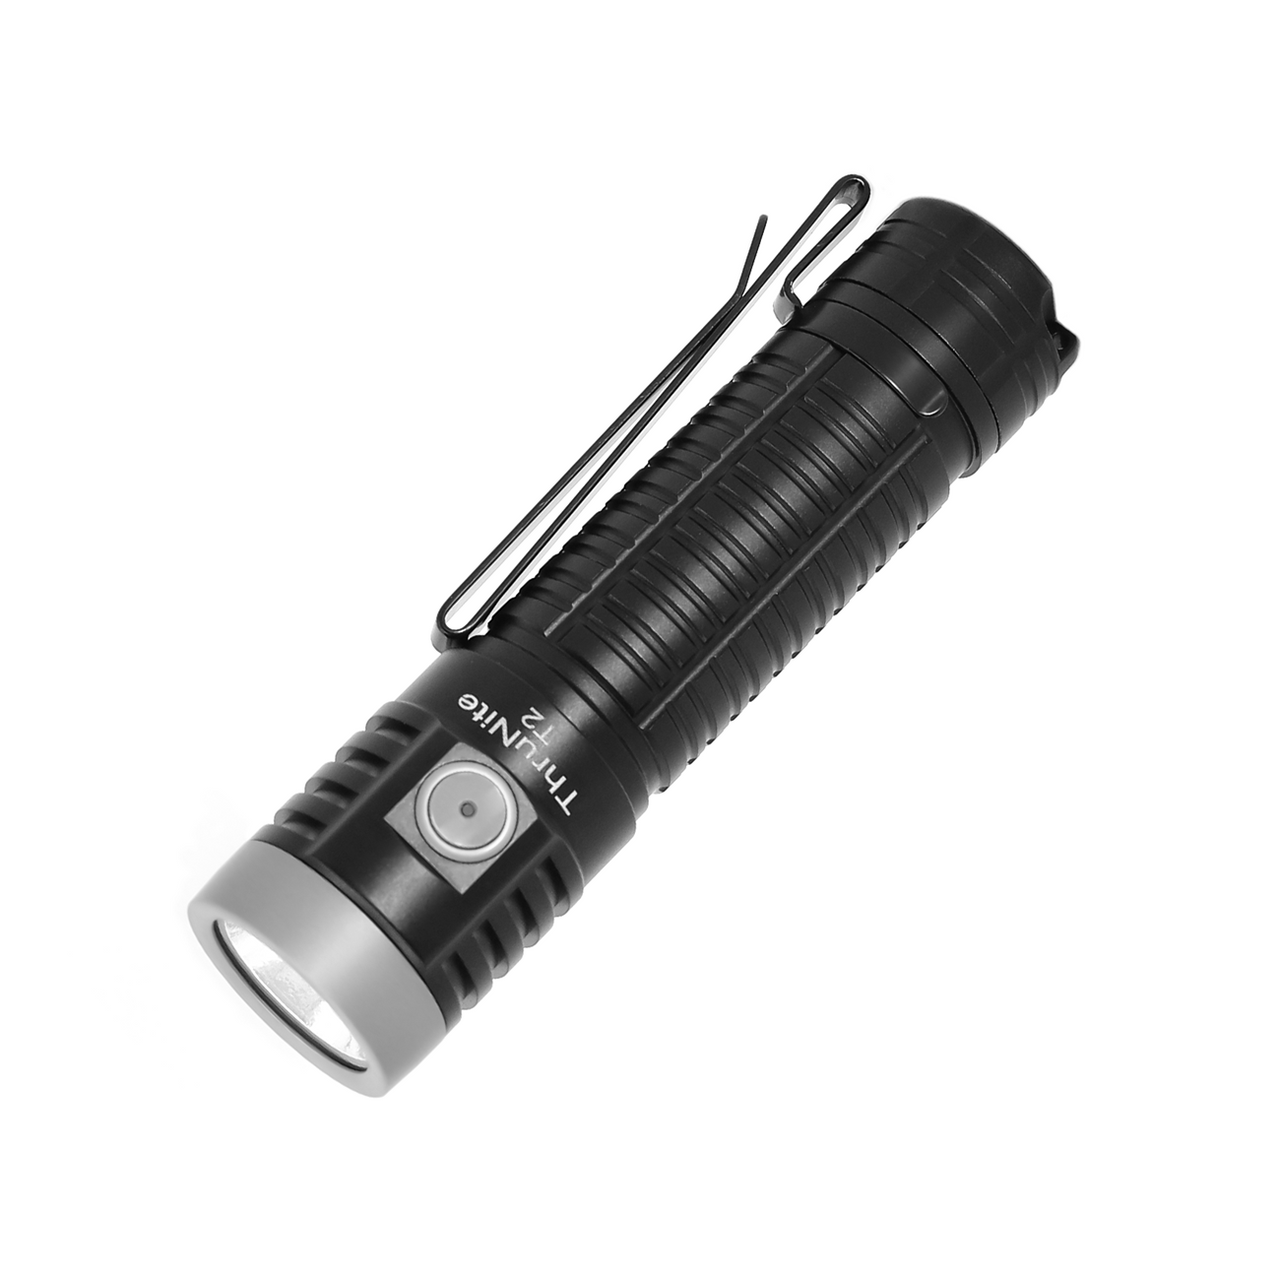 Thrunite Flashlight T2 Handheld Flashlight Tactical Light Thrunite has just released the new tc15 edc with xhp35 making a listed 2300 lumens. t2